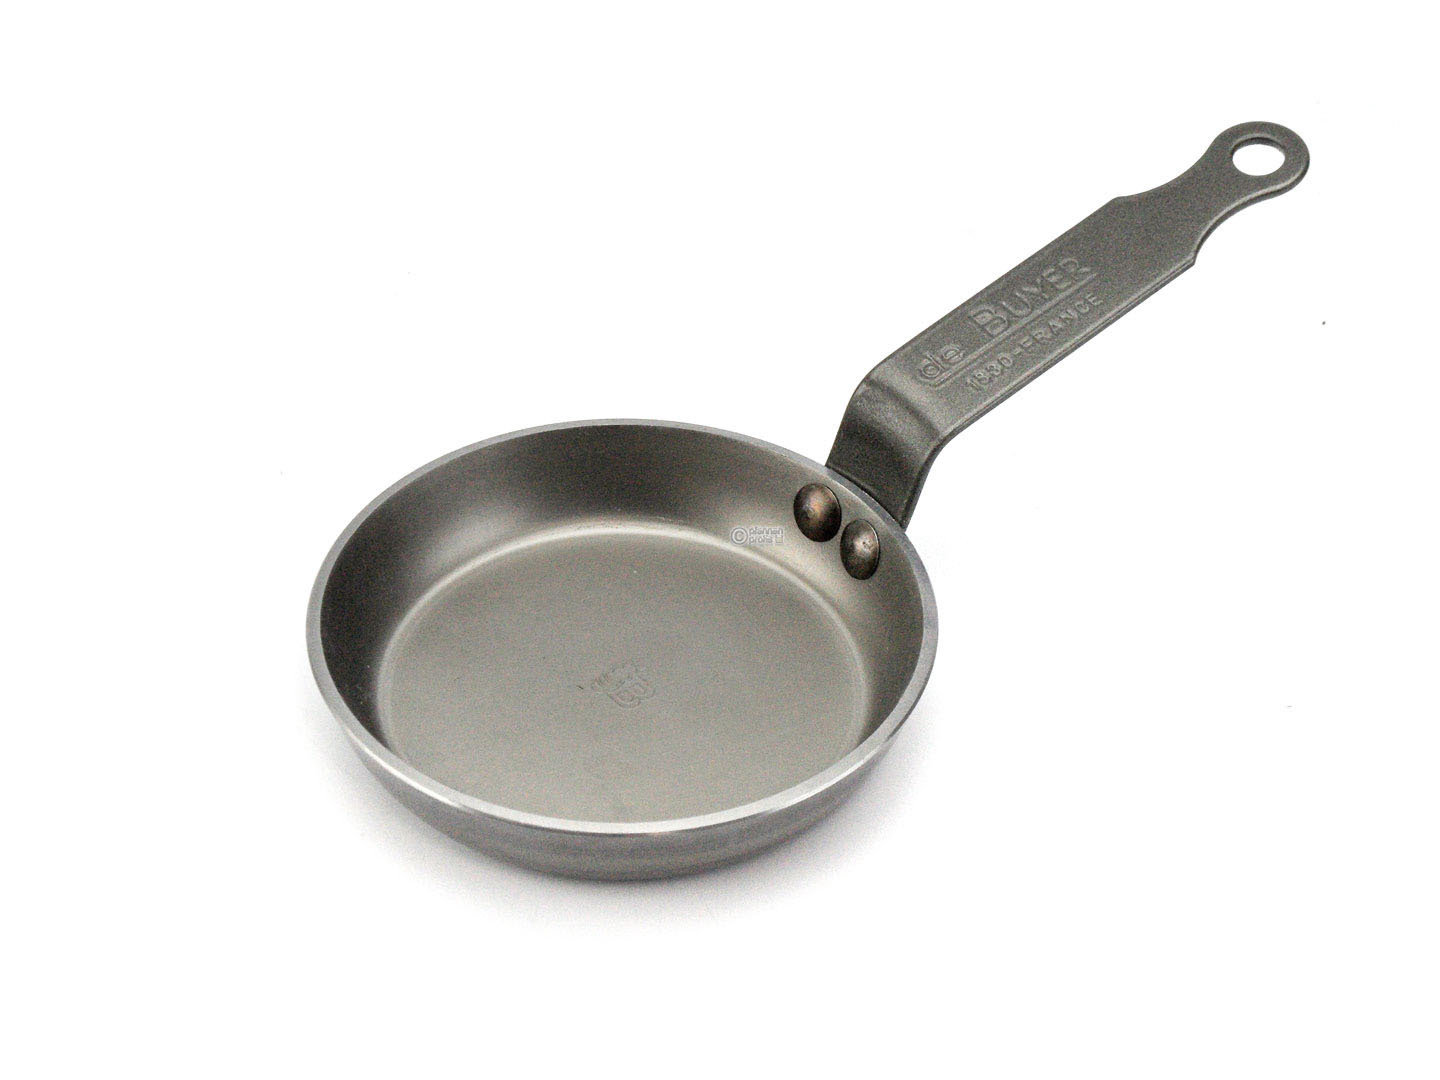 DE BUYER blini pan MINERAL B ELEMENT 12 cm small iron pan